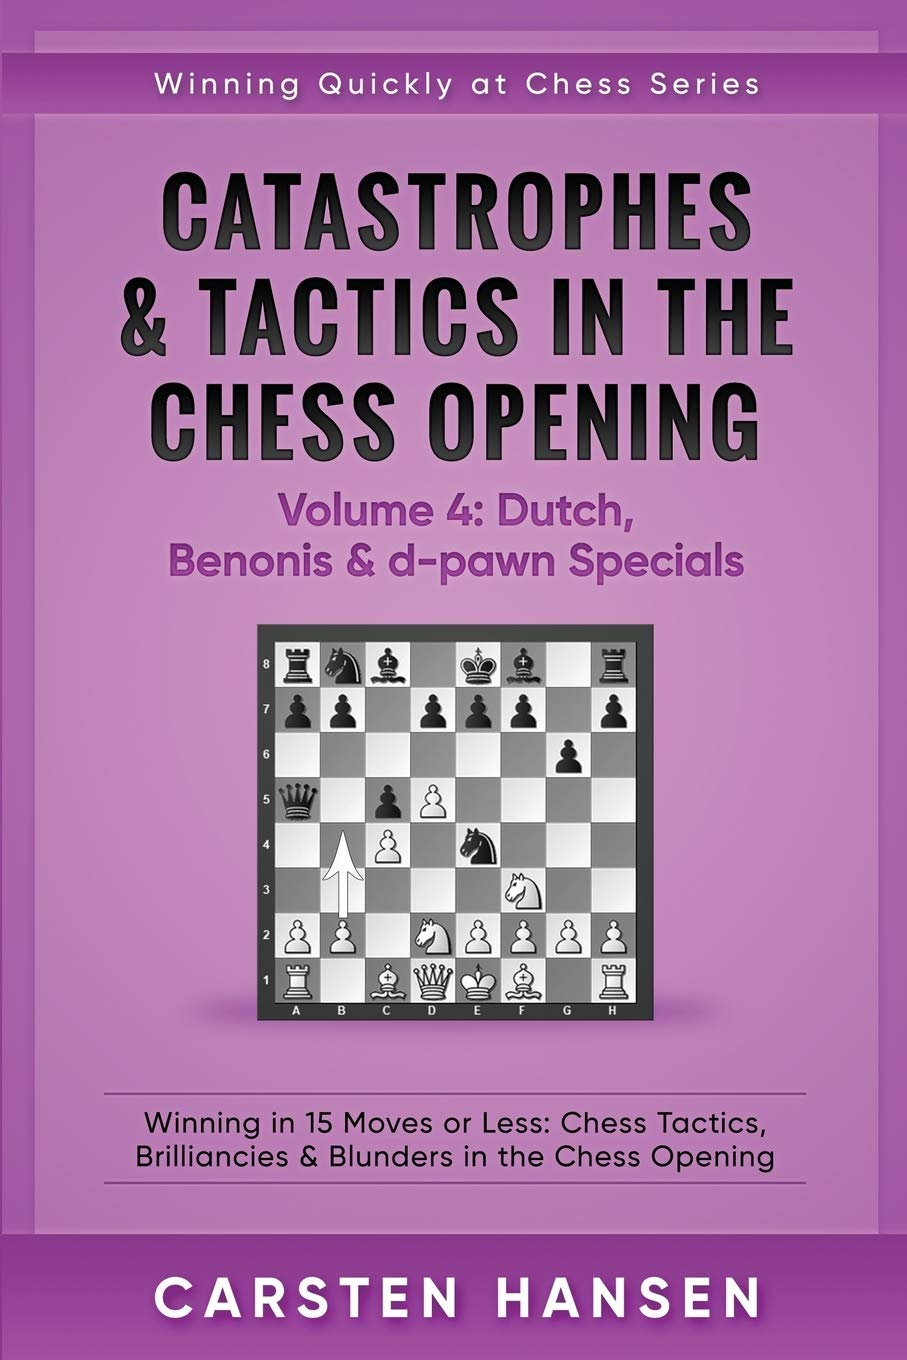 Catastrophes And Tactics In The Chess Opening   Volume 4  Dutch Benonis And D Pawn Specials  Winning In 15 Moves Or Less  Chess Tactics Brilliancies And ... Opening  Winning Quickly At Chess Band 4